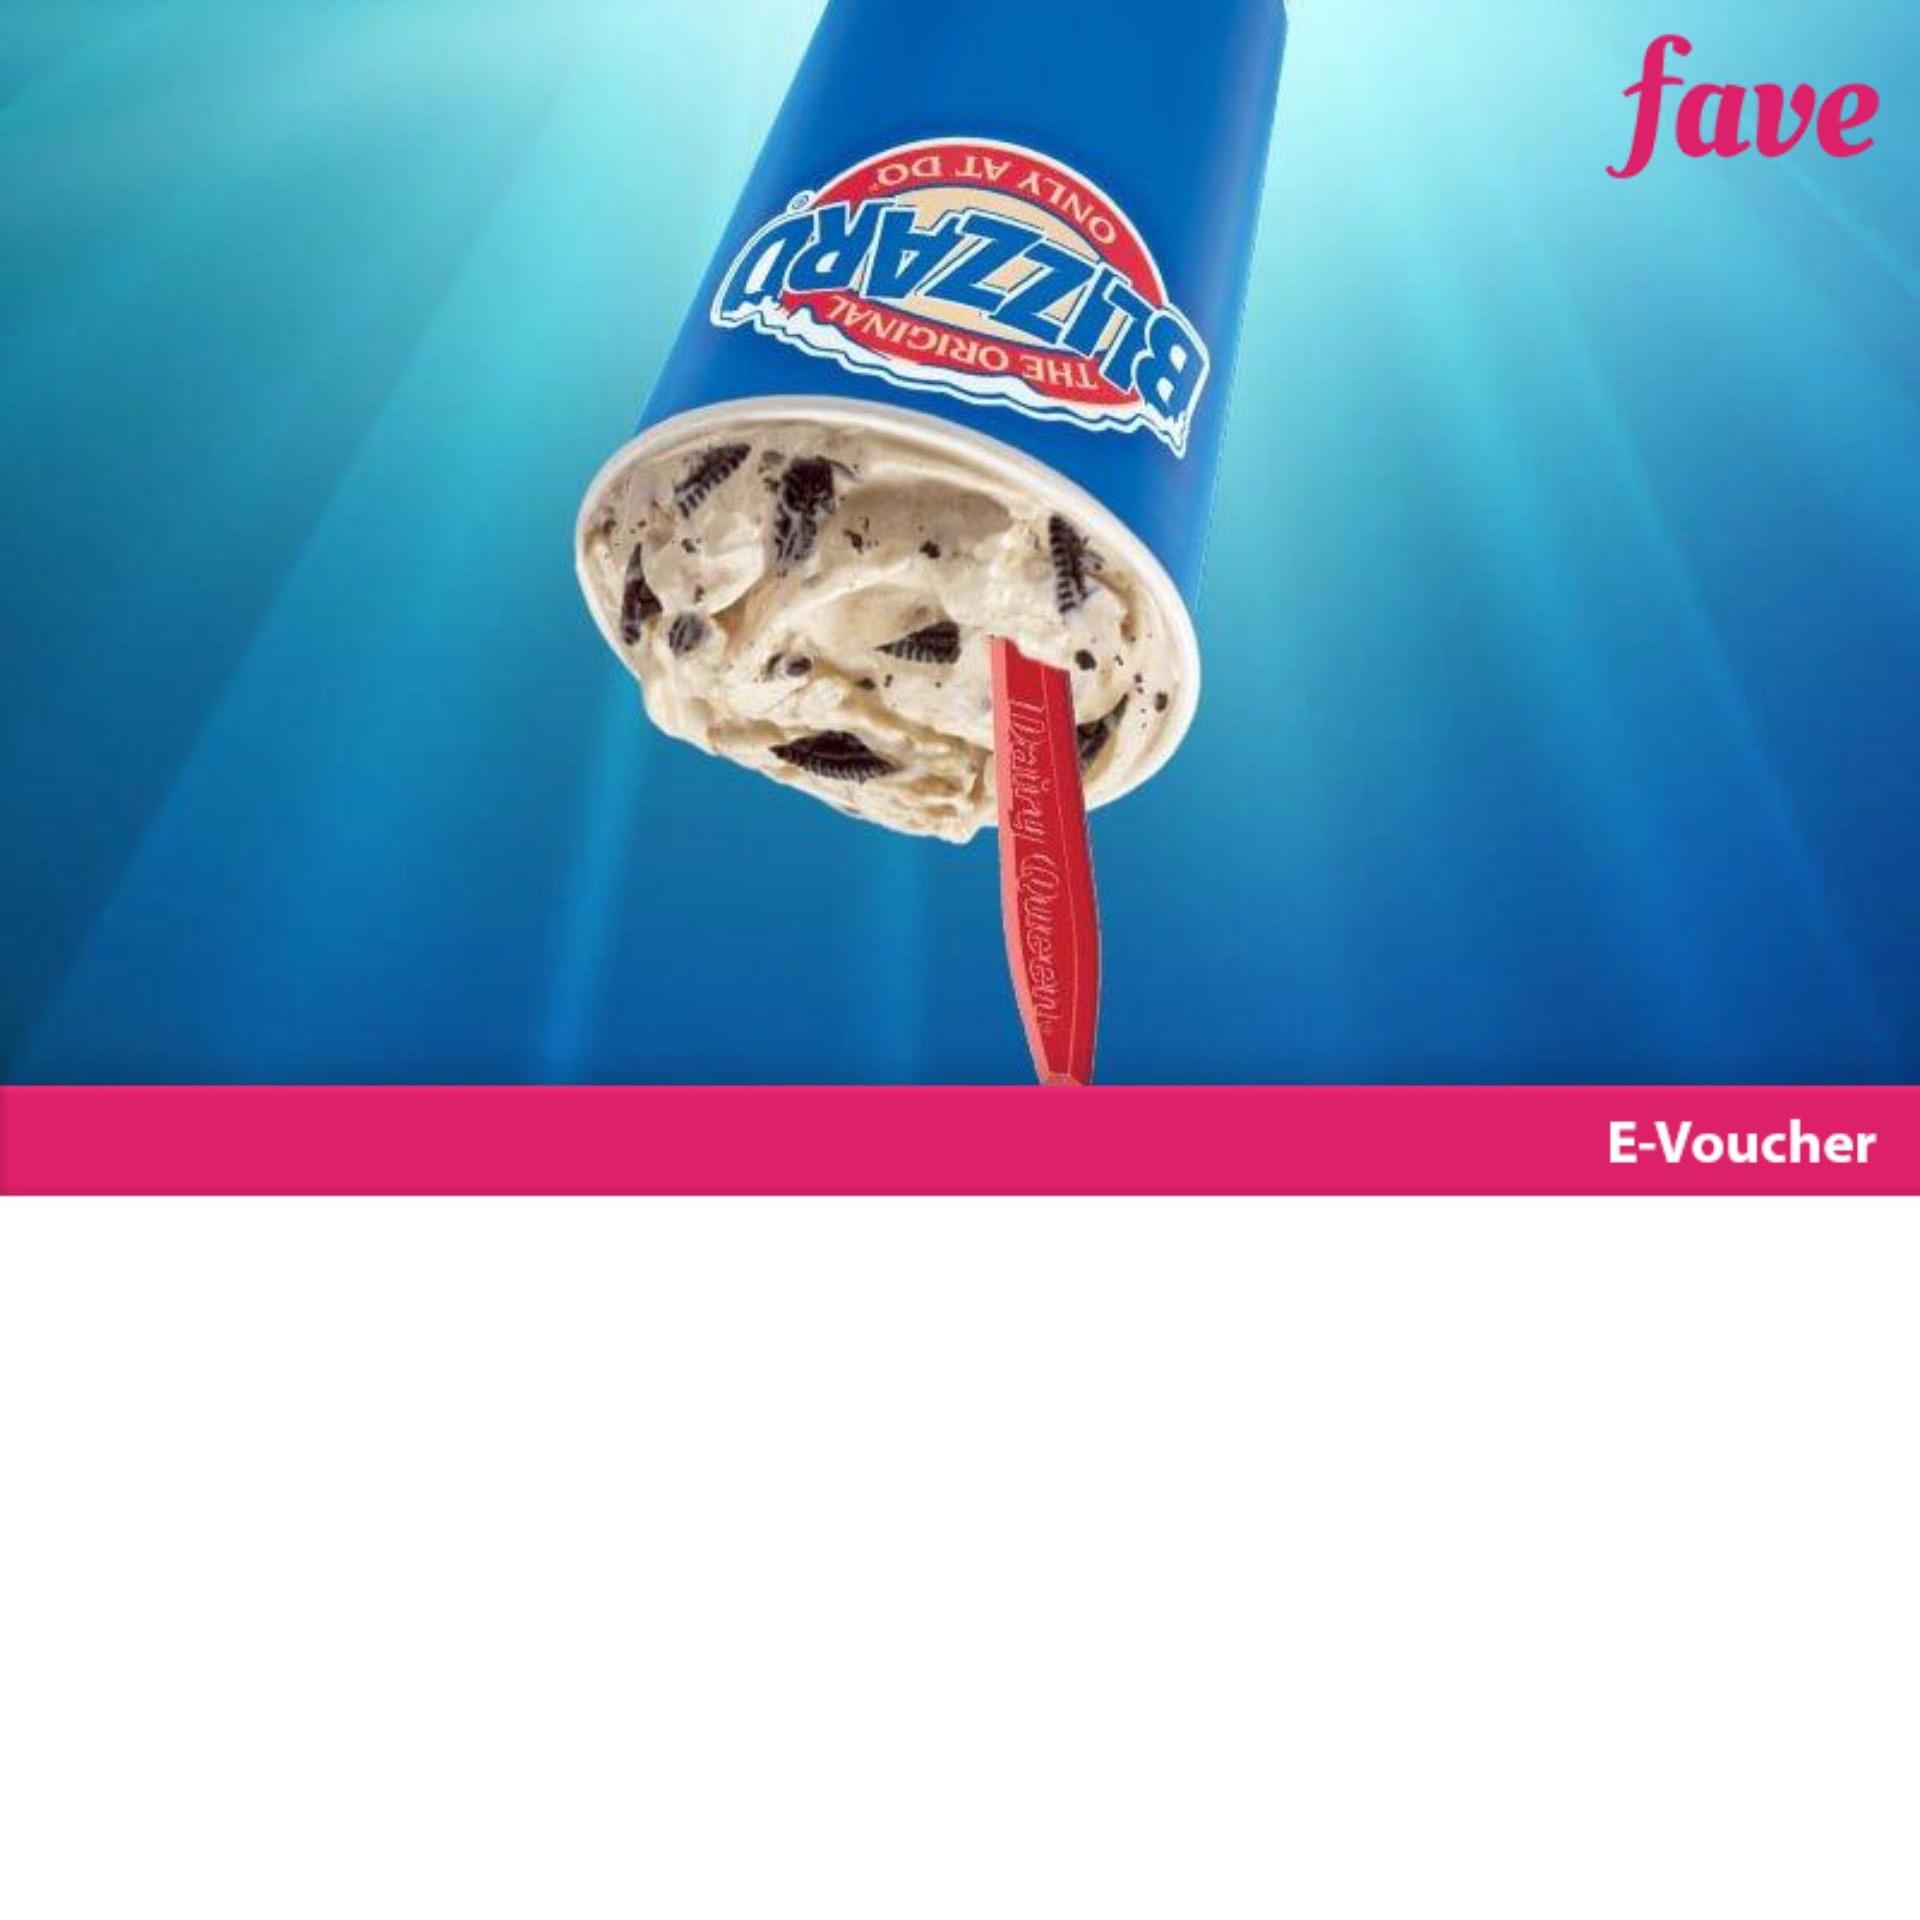 Dairy Queen [buy 1 Get 1] Buy 1 Medium Blizzard Oreo Flavor Get 1 Medium Any Flavor By Fave Indonesia.